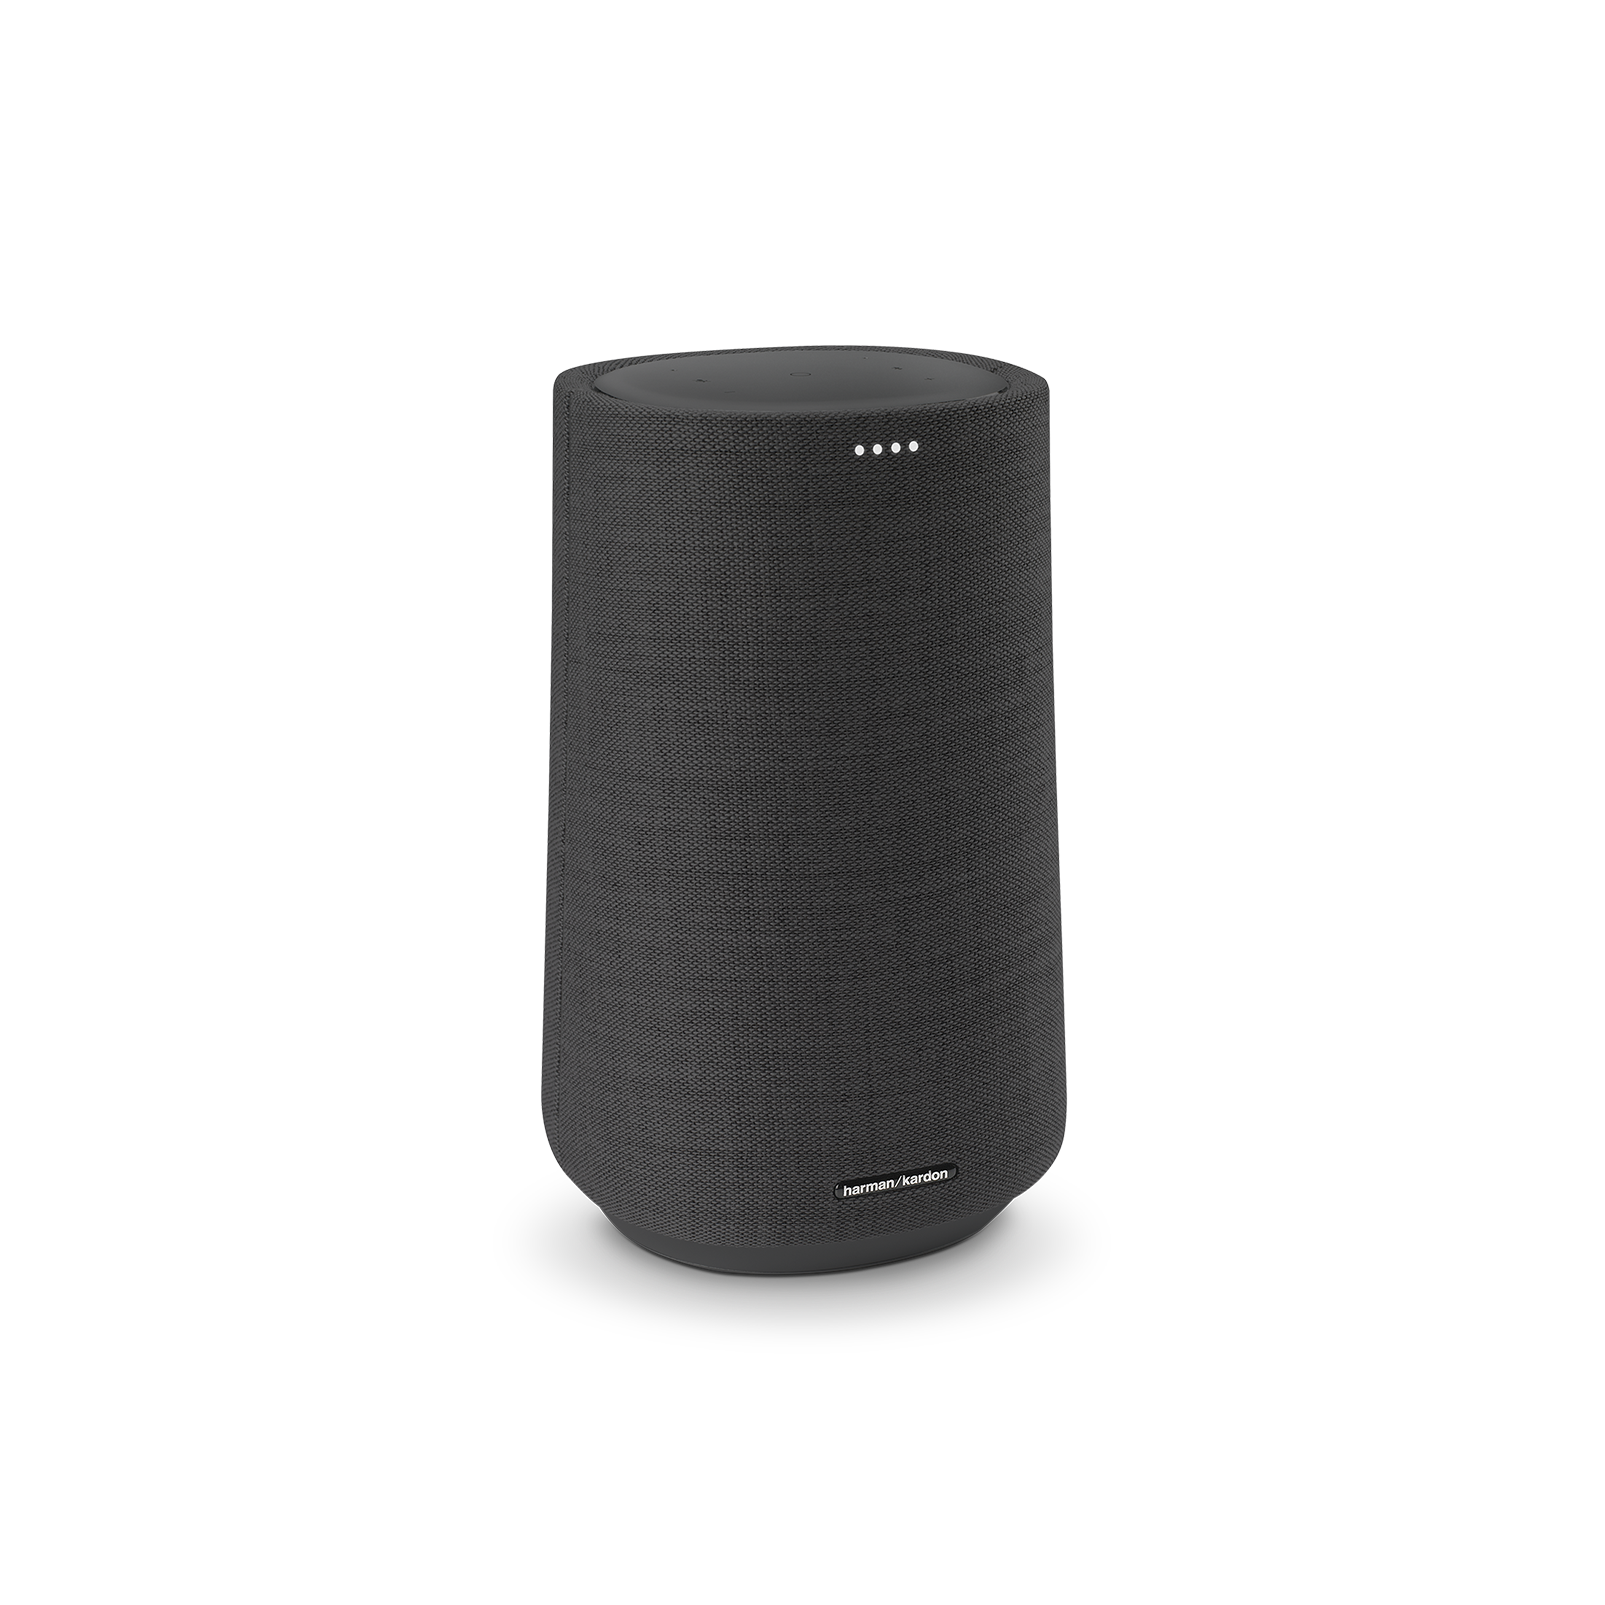 Harman Kardon Citation 100 - Black - The smallest, smartest home speaker with impactful sound - Hero